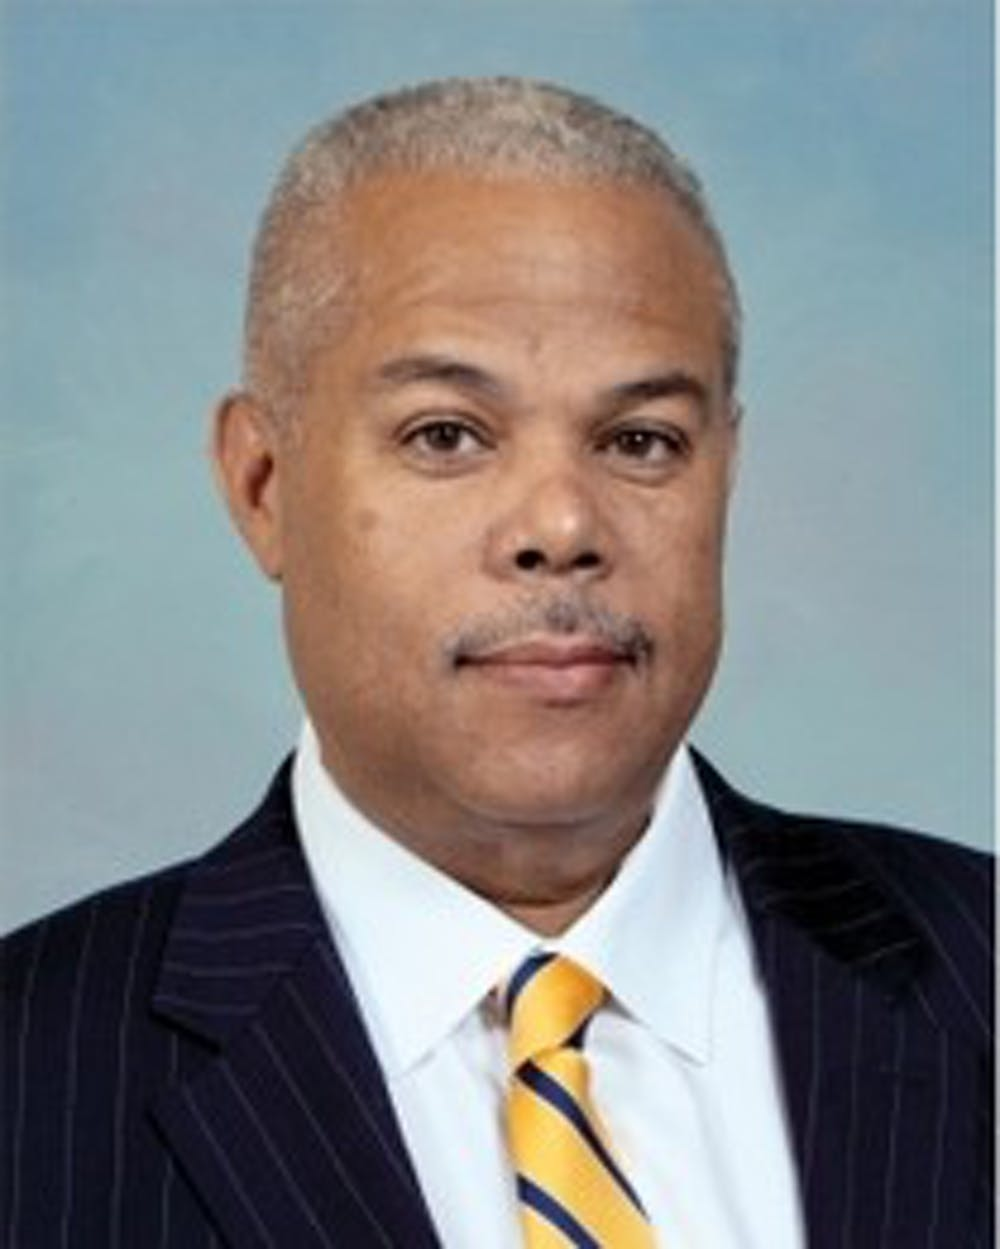 <p><strong>Anthony Hardy Williams,</strong>State Senator</p>